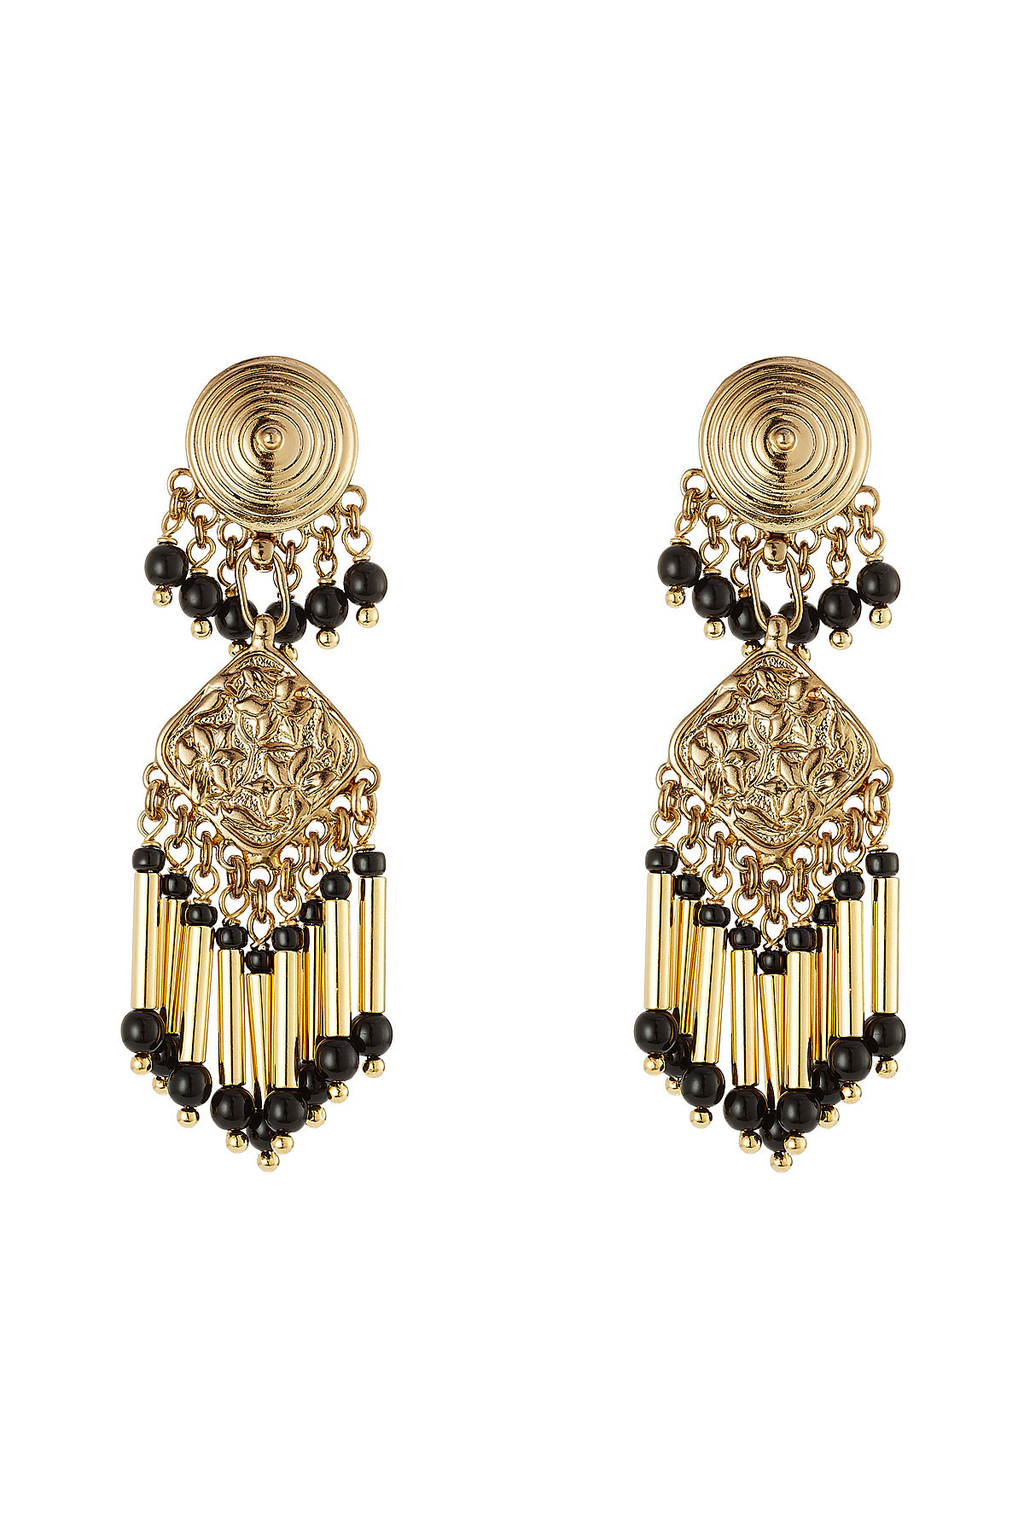 Bead Embellished Earrings - predominant colour: gold; secondary colour: black; occasions: evening, occasion; style: drop; length: long; size: standard; material: chain/metal; fastening: pierced; finish: metallic; embellishment: beading; season: s/s 2016; wardrobe: event